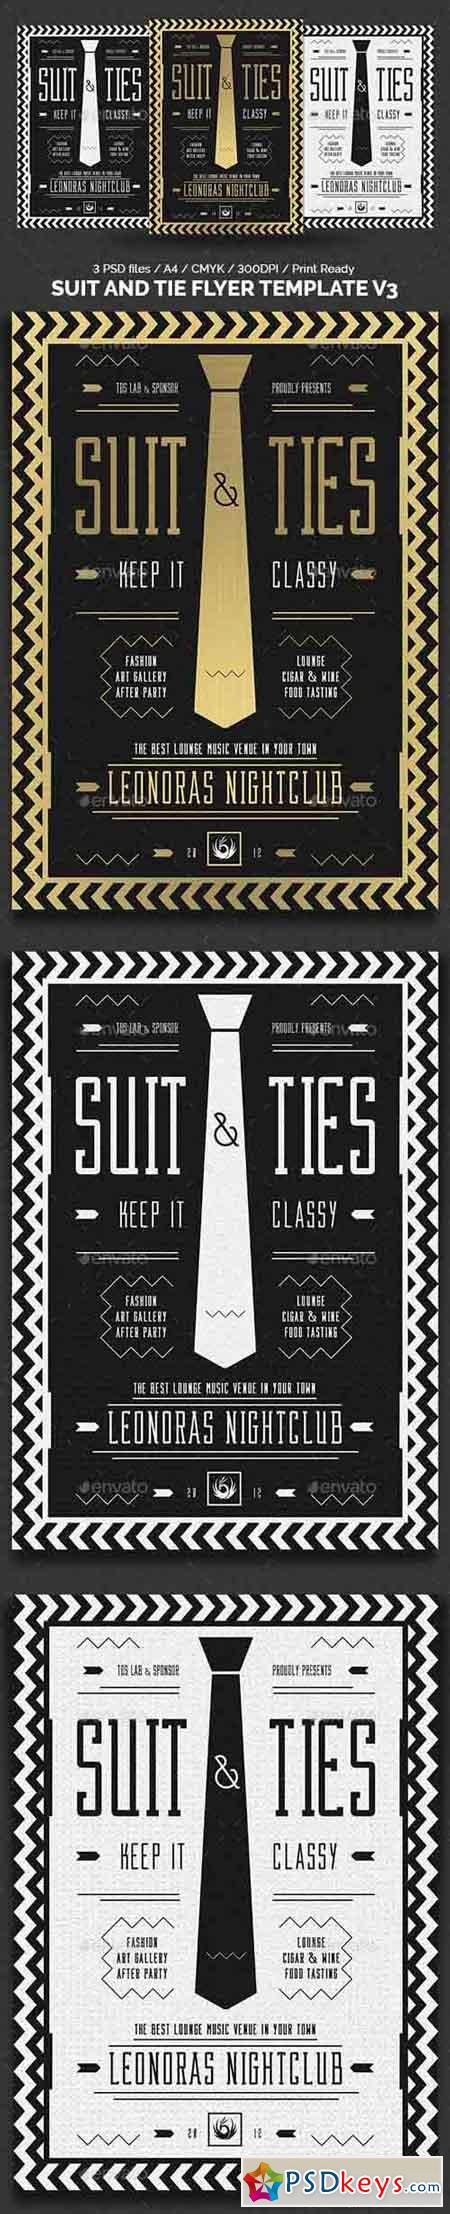 Suit and Tie Flyer Template V3 19364356